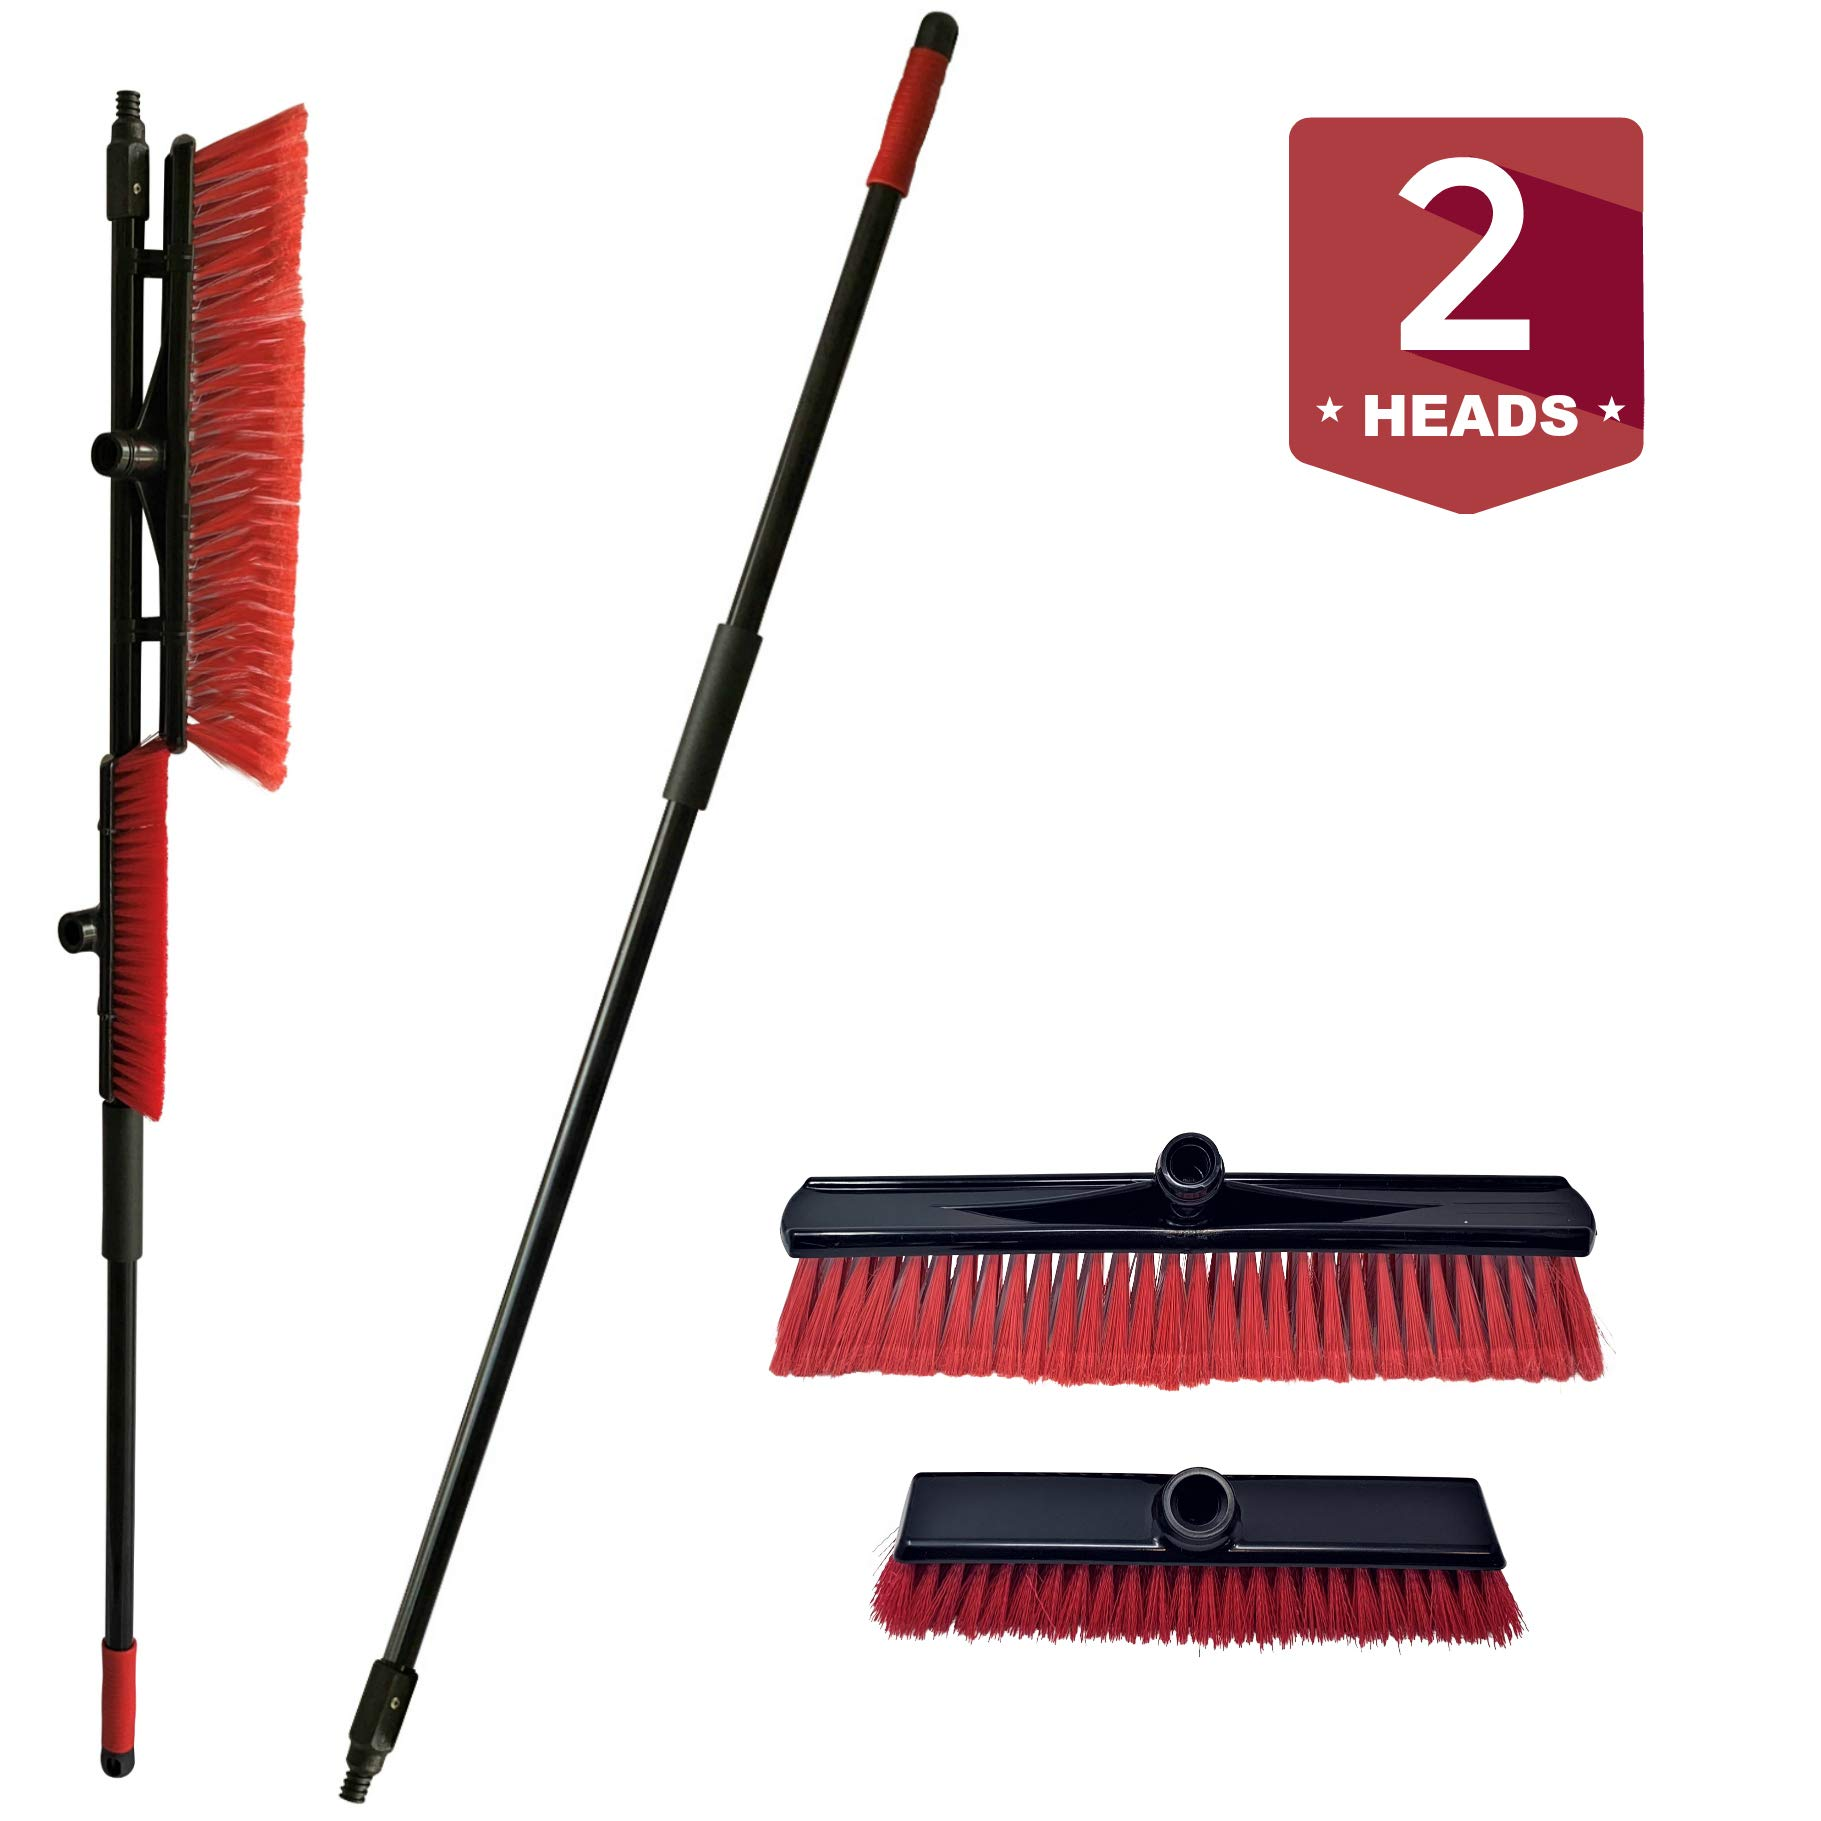 Patio and Deck Brush Combo Set - 18 Inch Head Outdoor Push Broom with Deck Brush Scrub Head by FOXTROT